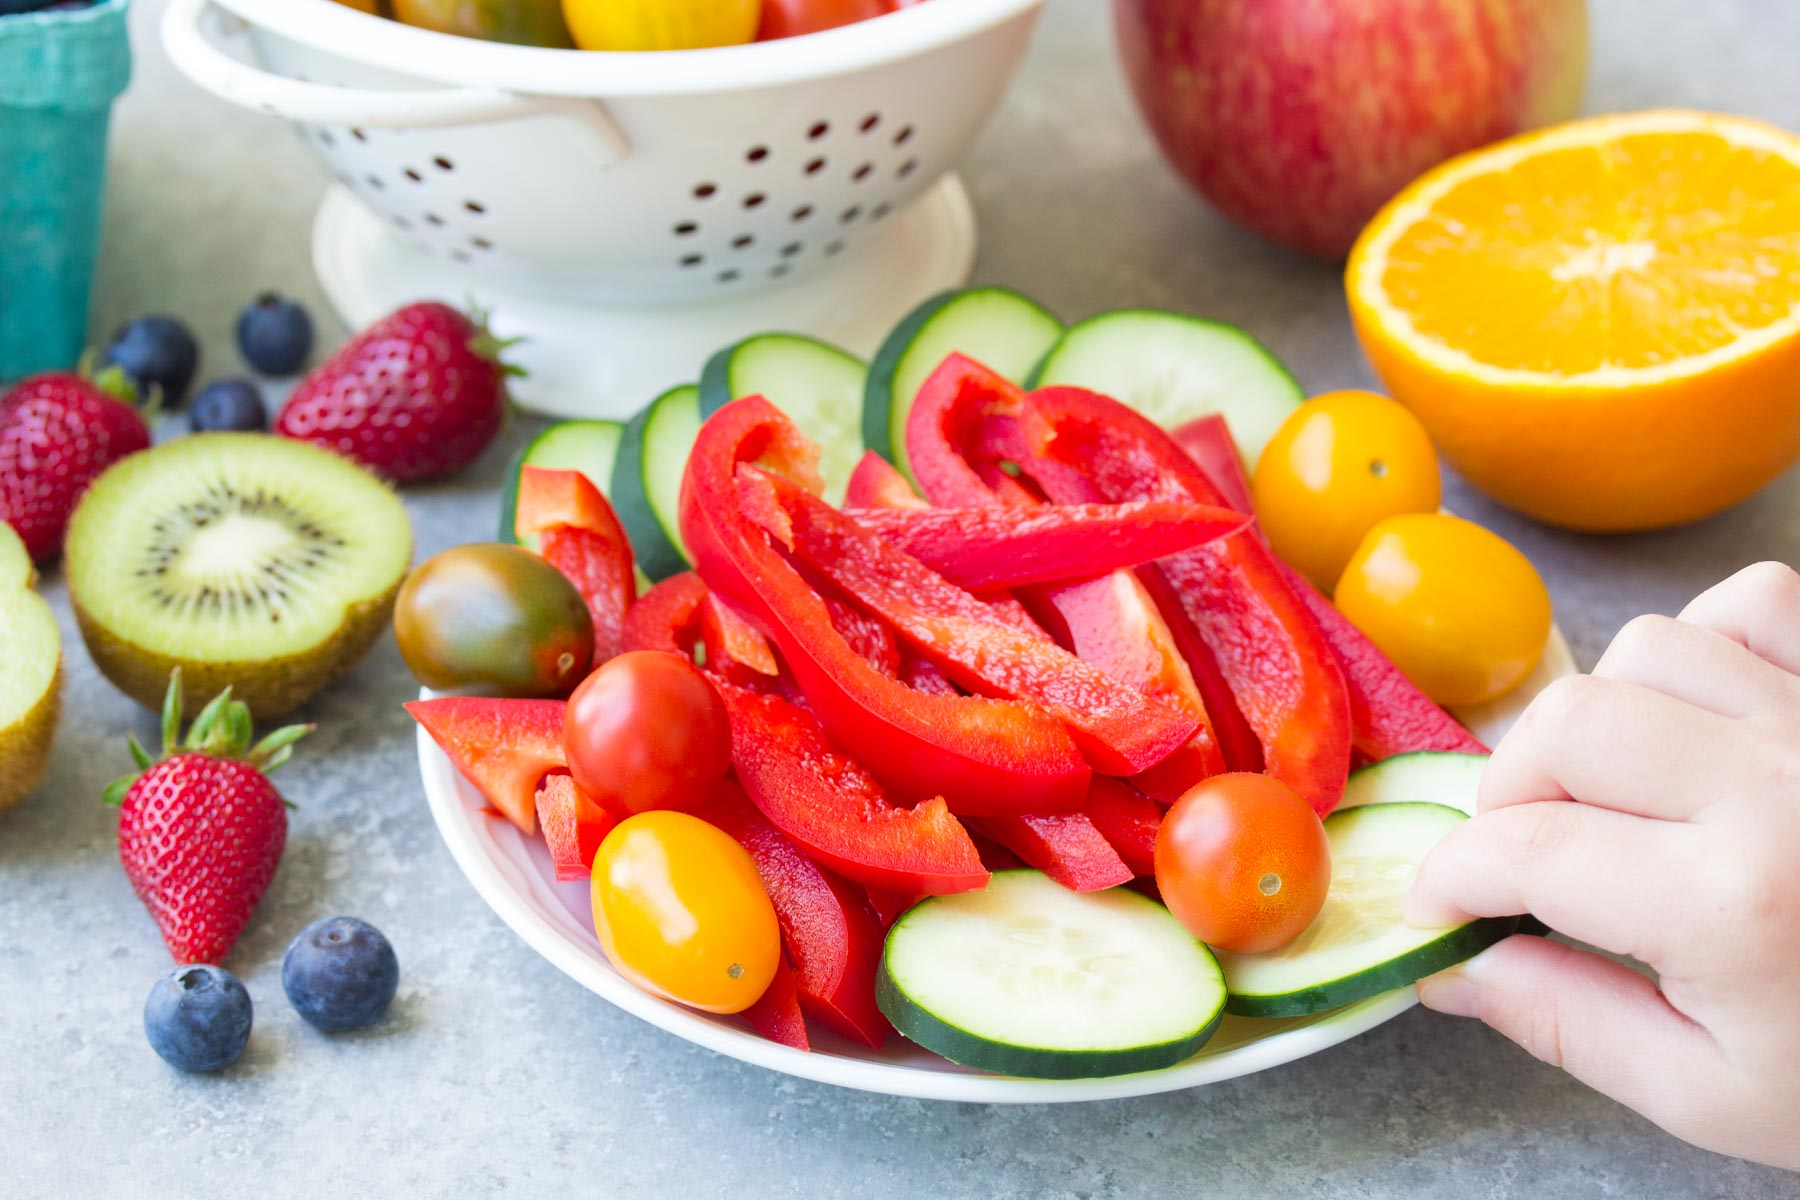 A veggie plate - offer fresh vegetables when the kids are hungry right before dinner.